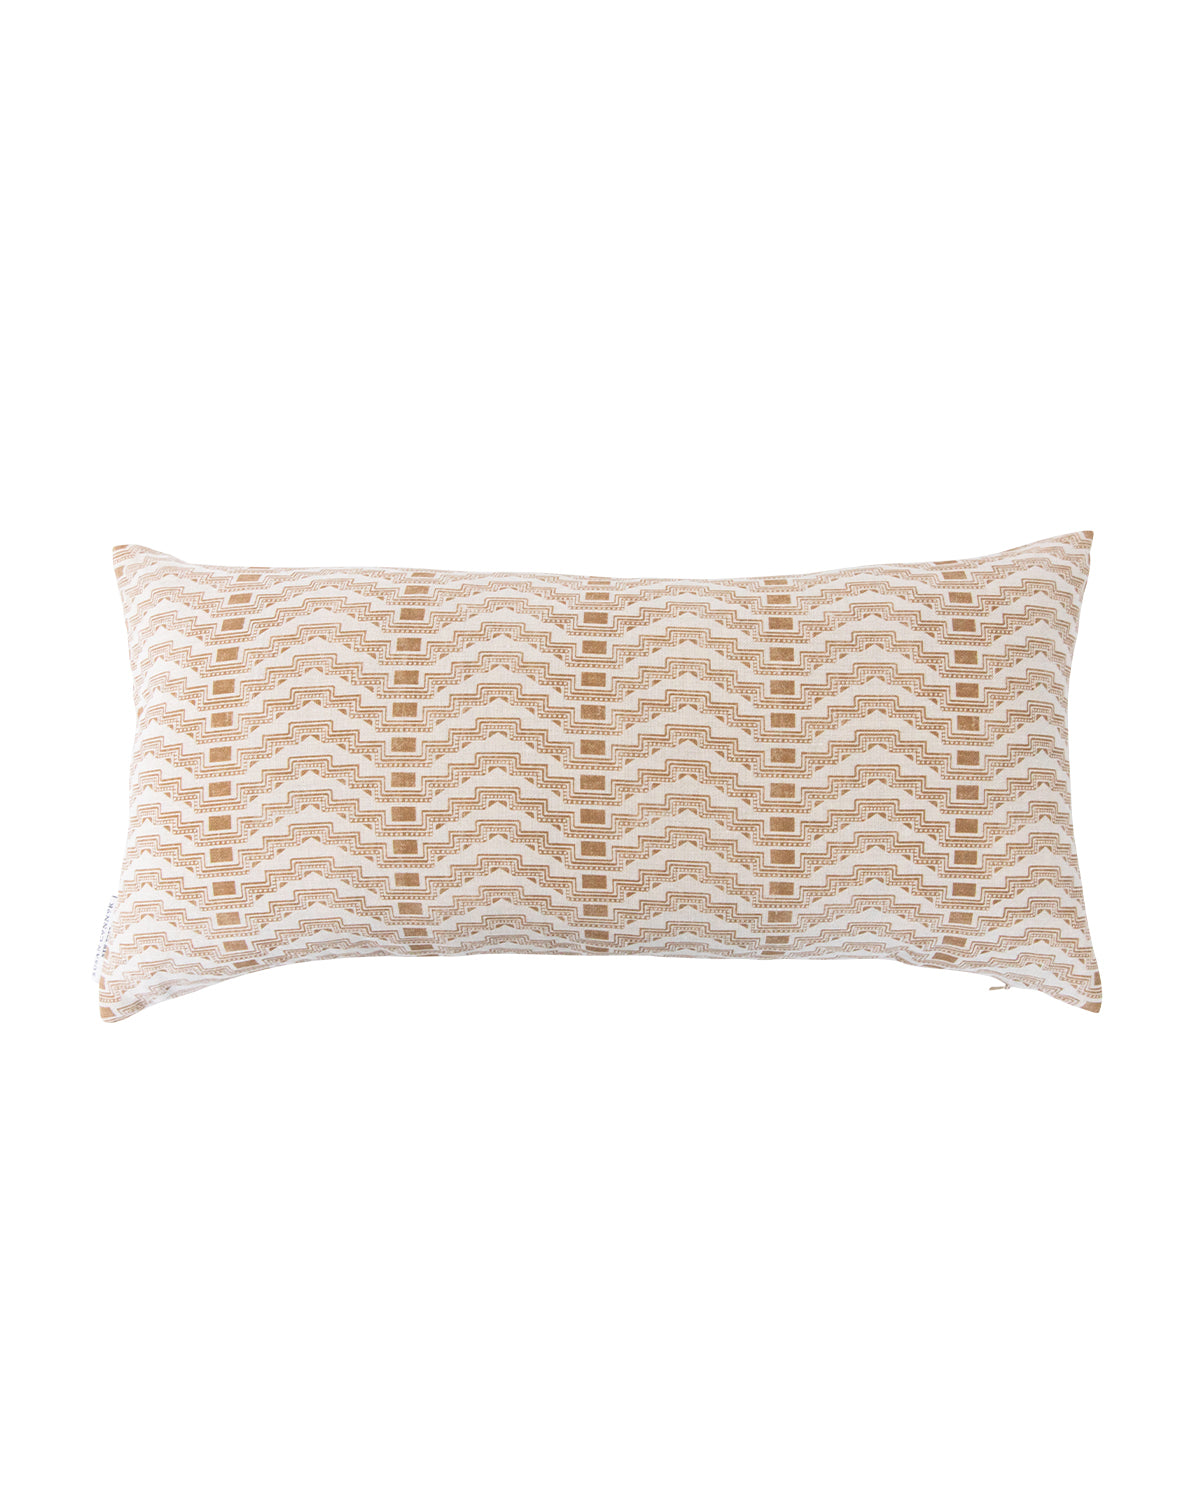 Hejira Pillow Cover